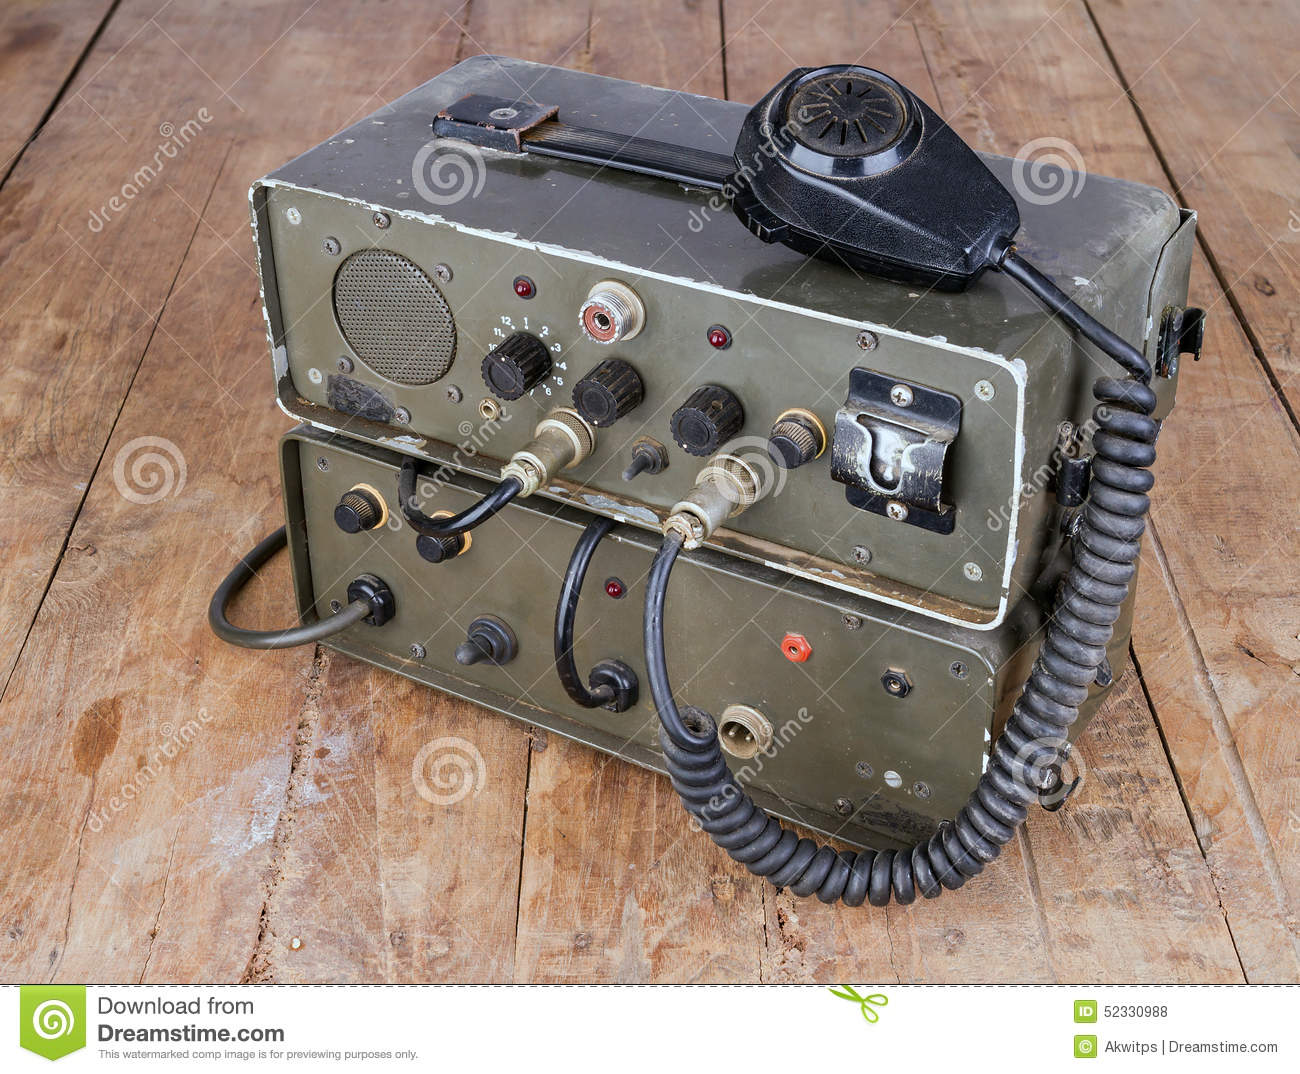 Old Amateur Ham Radio On Wooden Table Stock Photo - Image of